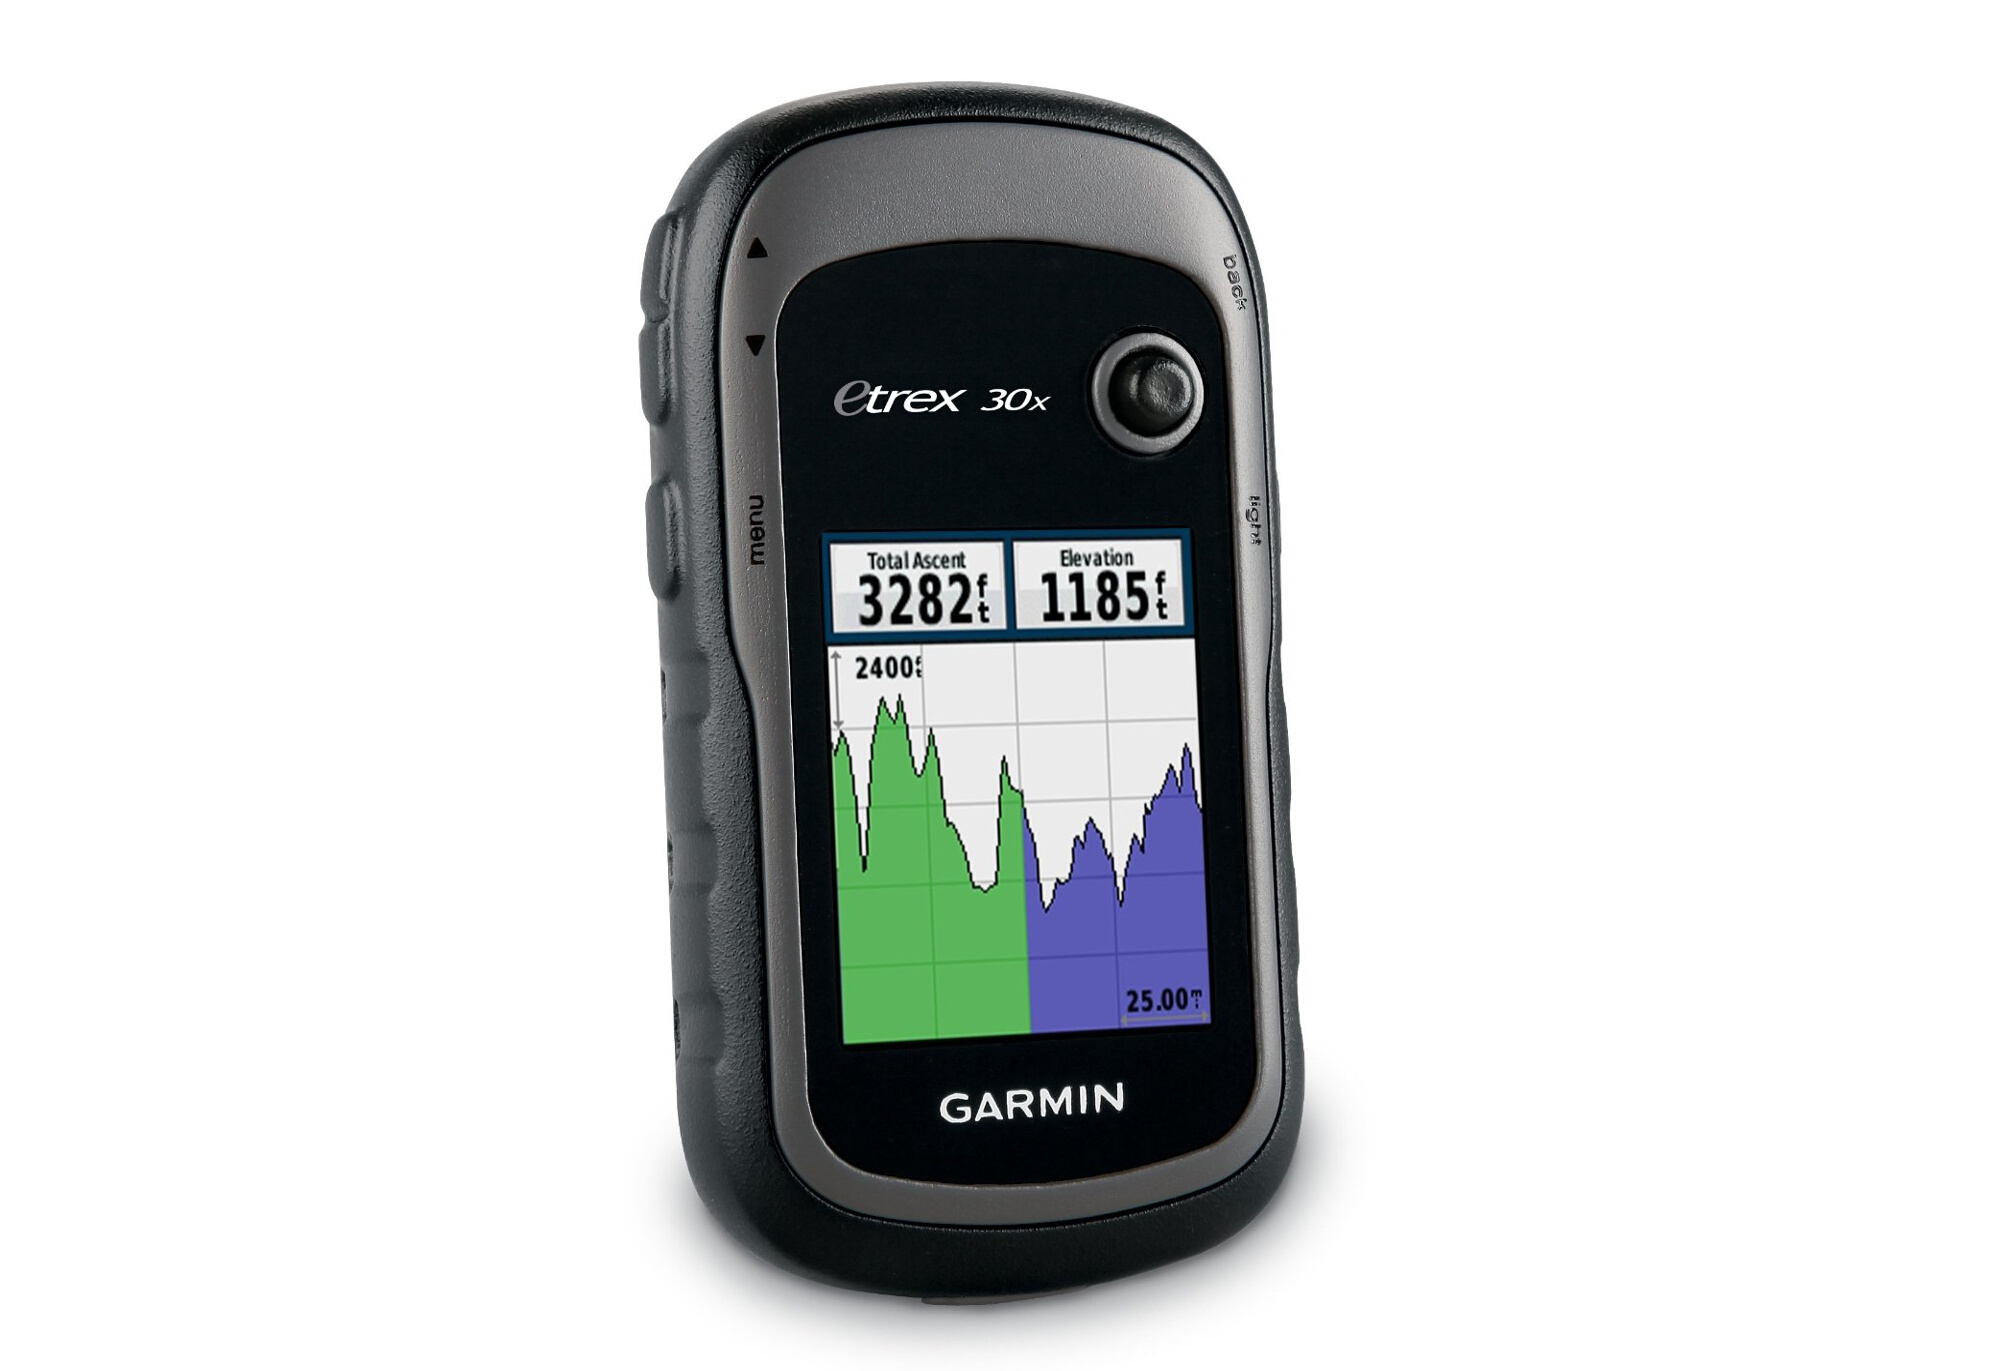 compteur gps garmin etrex 30x avec cartographie europe de l ouest. Black Bedroom Furniture Sets. Home Design Ideas